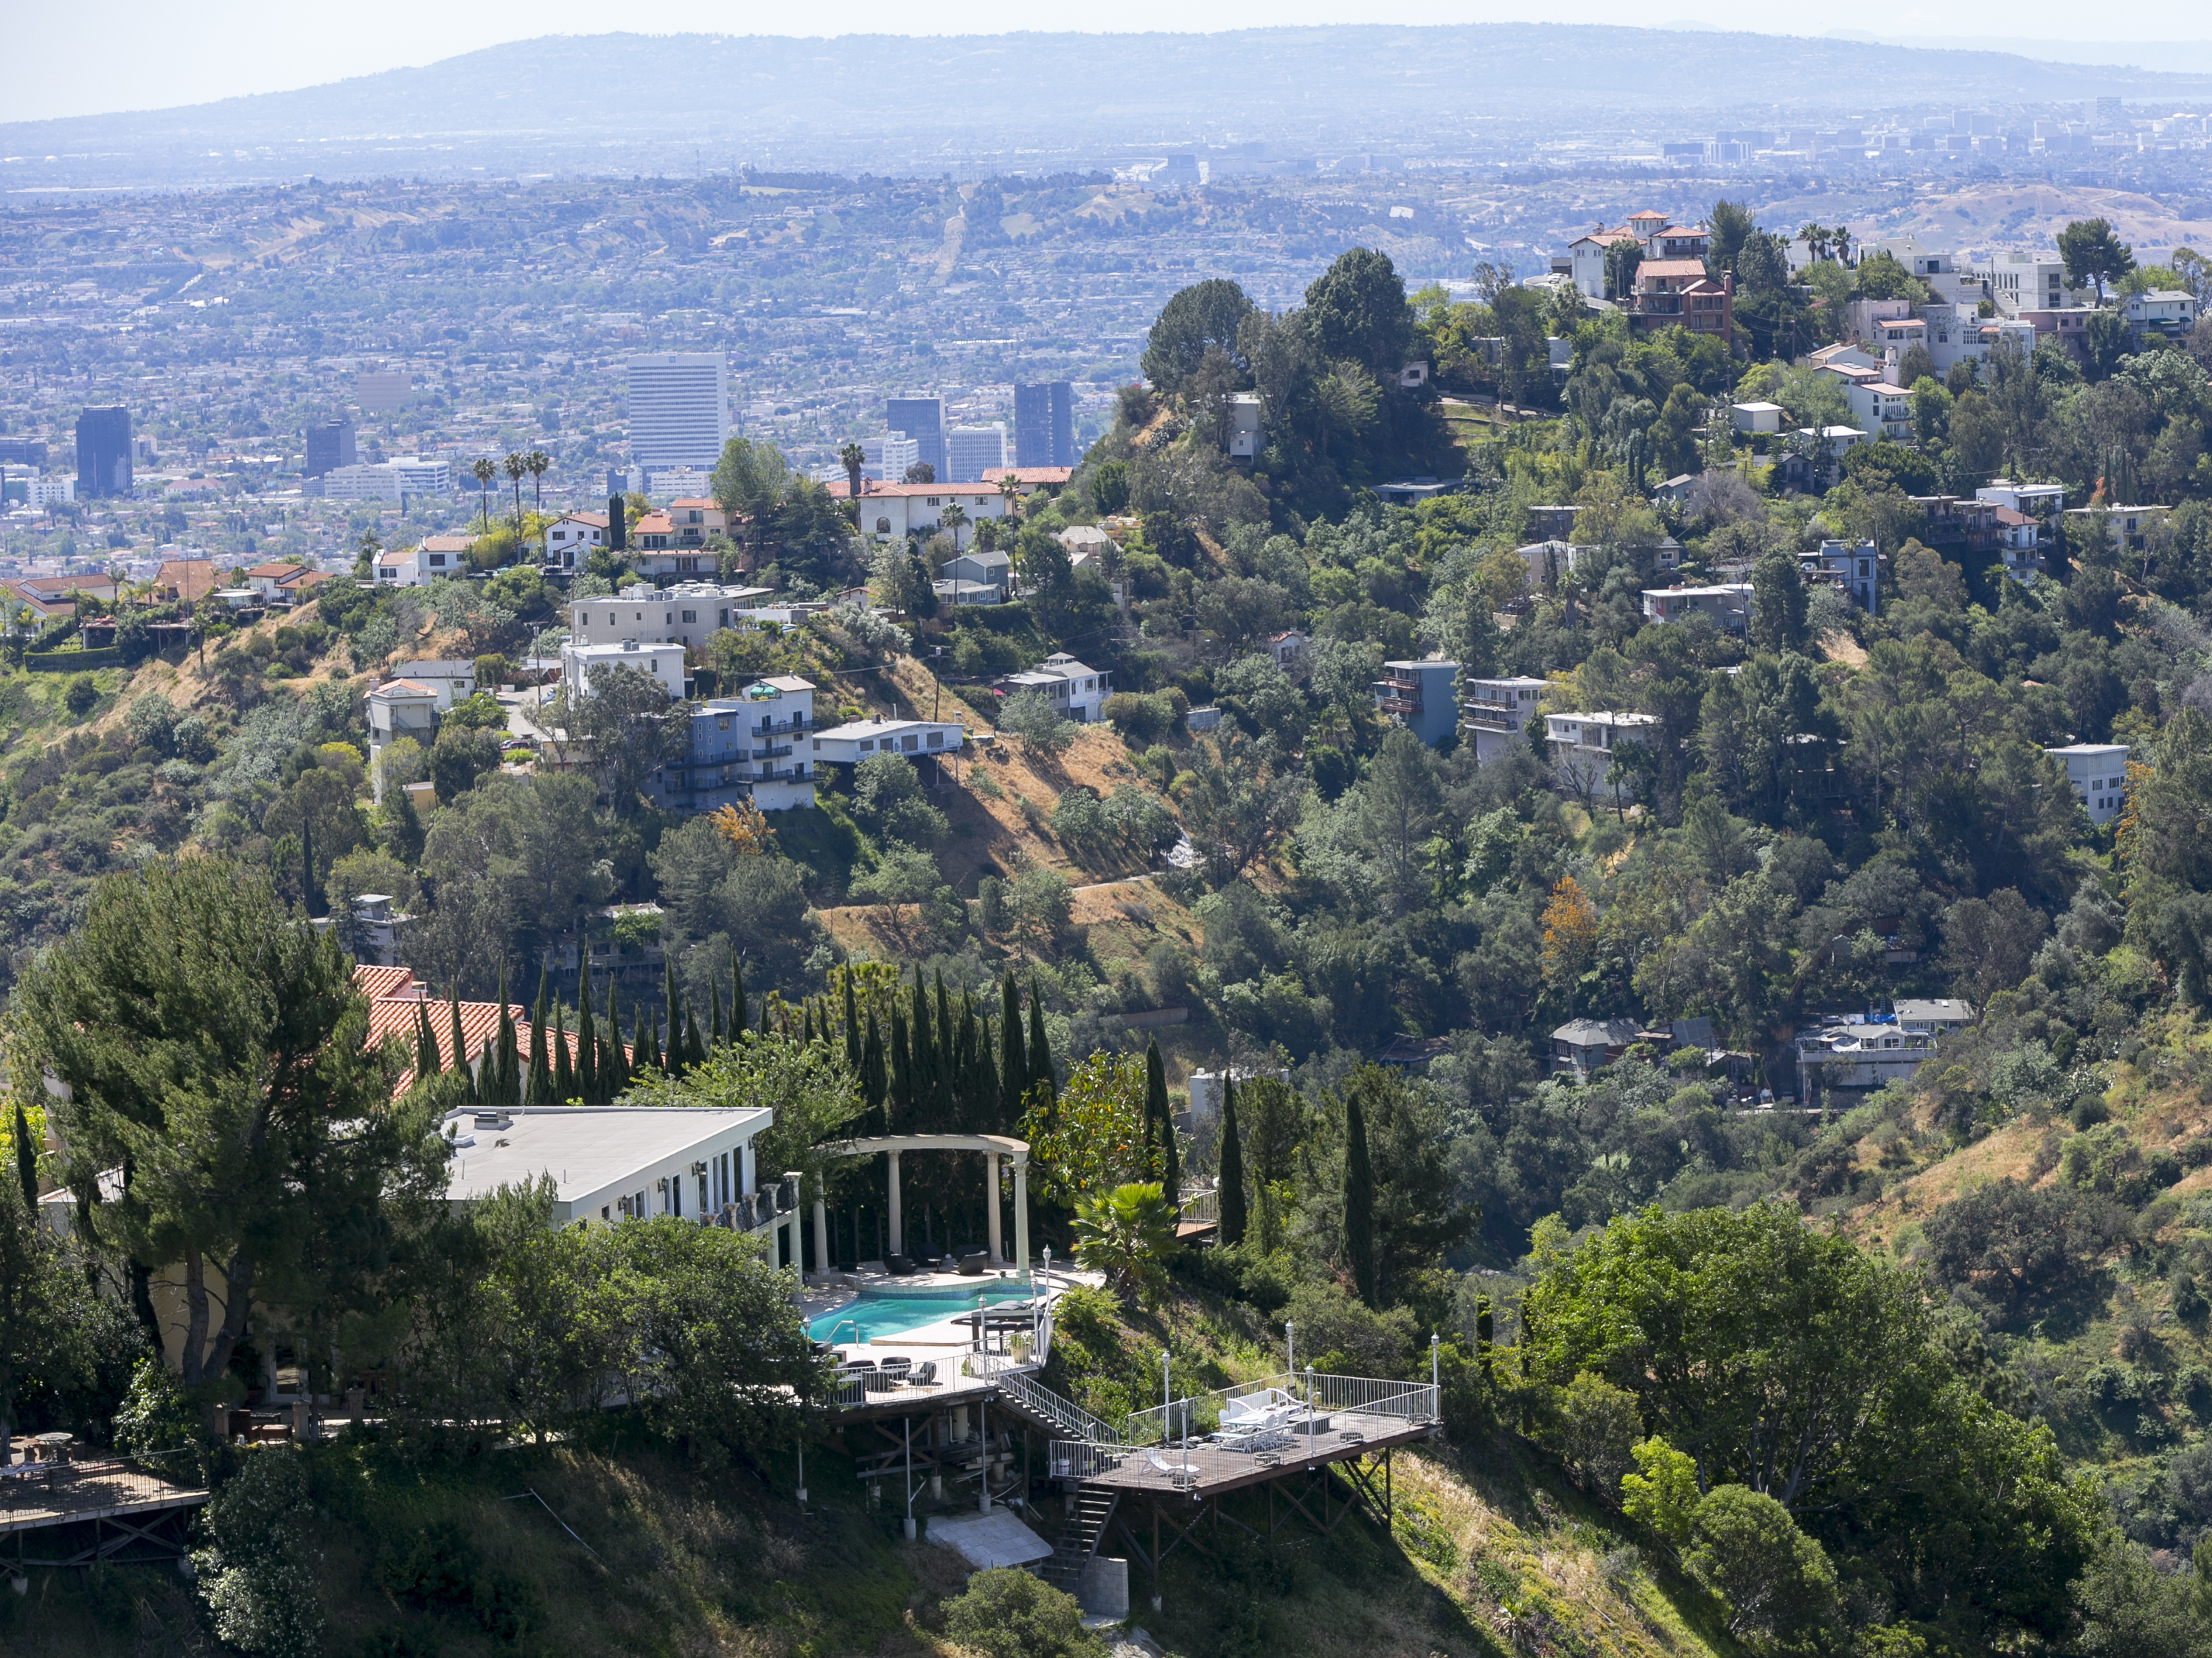 Latest oil and gas pittsburgh post gazette for Celebrities that live in hollywood hills